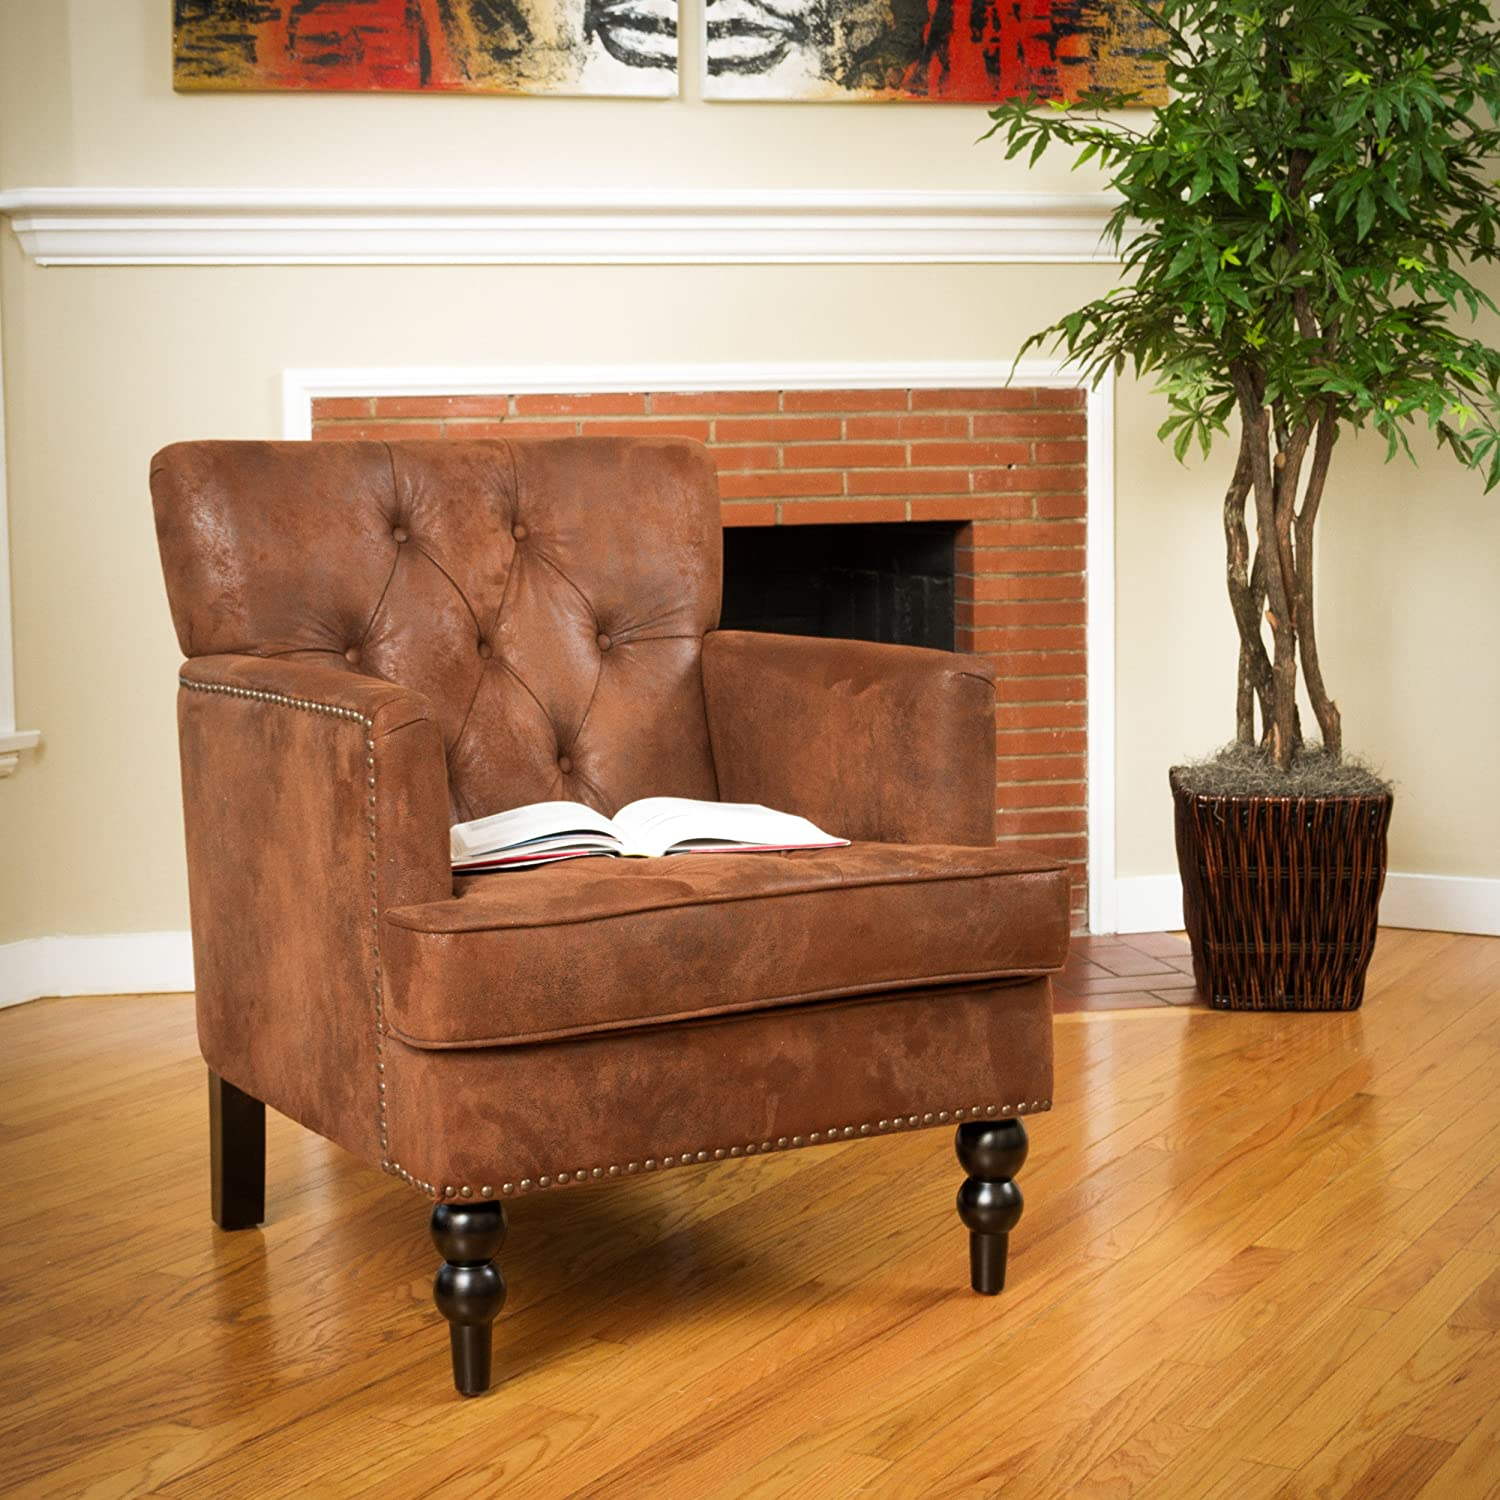 DROP SHIP Armen Living LCF024TUSIBL Carlyle Side Chair in Black Velvet and Black Wood Finish LEGACY COMMERCIAL HOLDINGS INC ARMEN LIVING